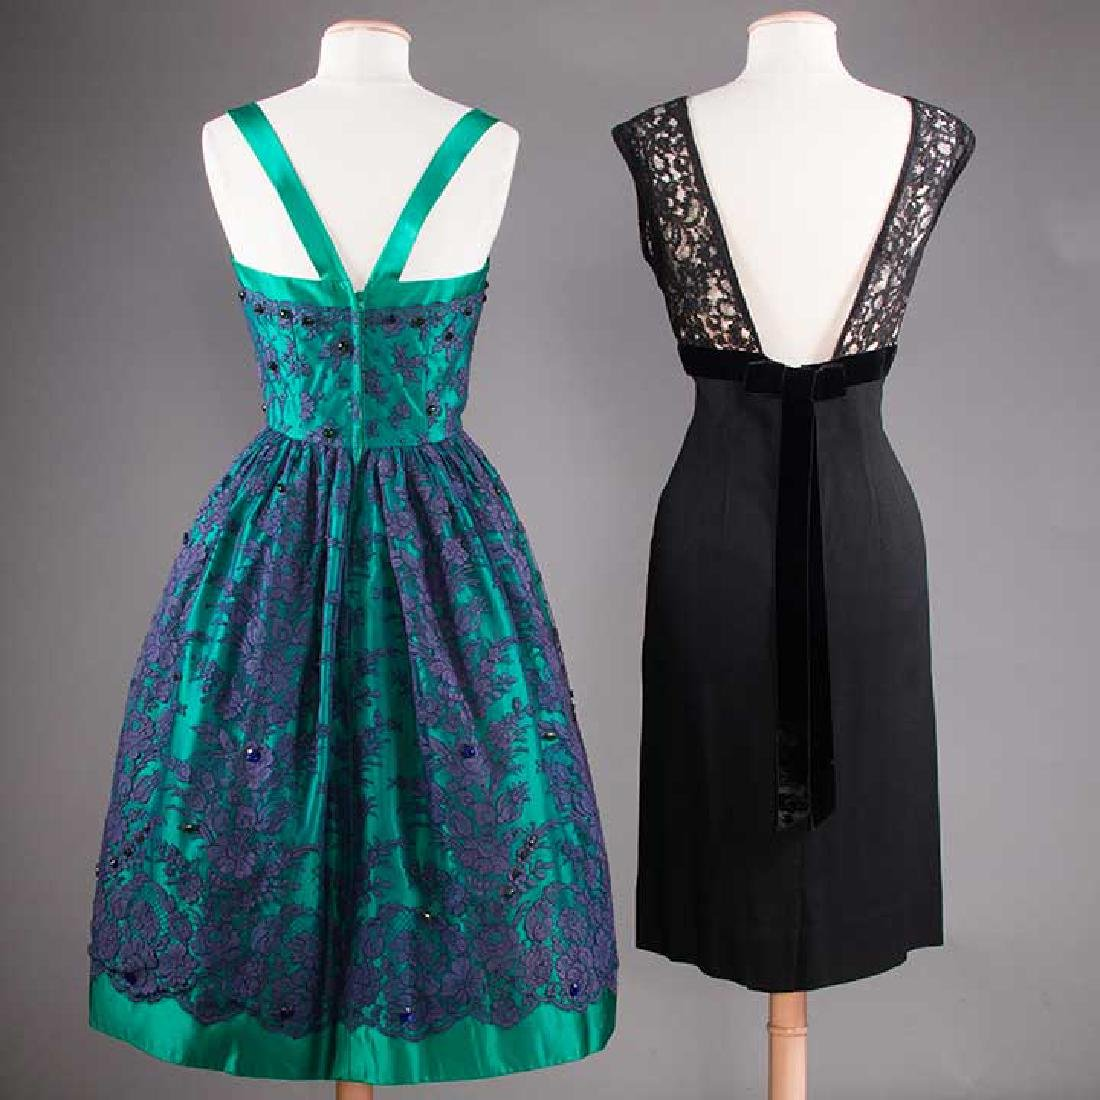 1 GREEN & 1 BLACK PARTY DRESS, 1955-1965 - 3